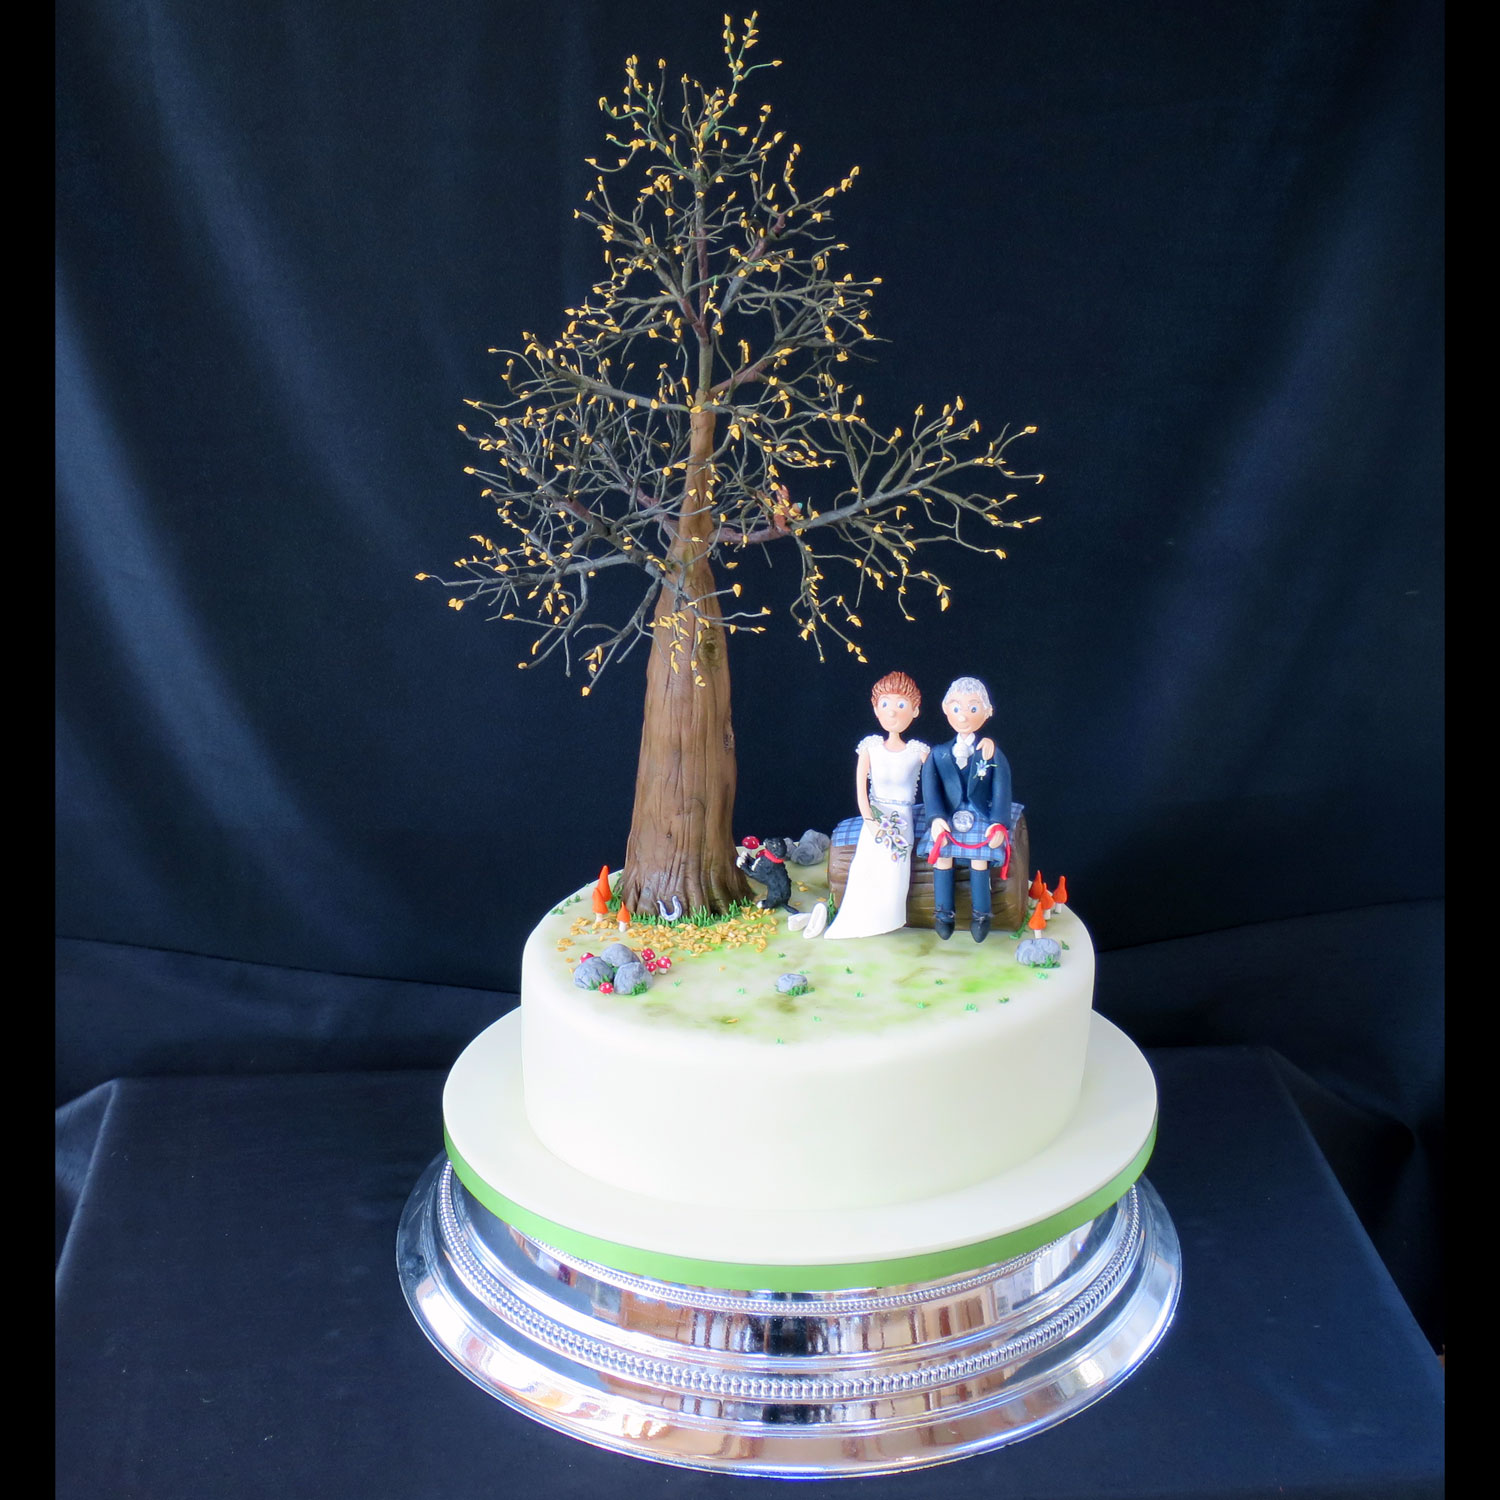 Sugarcraft Tree with Bride and Groom sitting on a log.